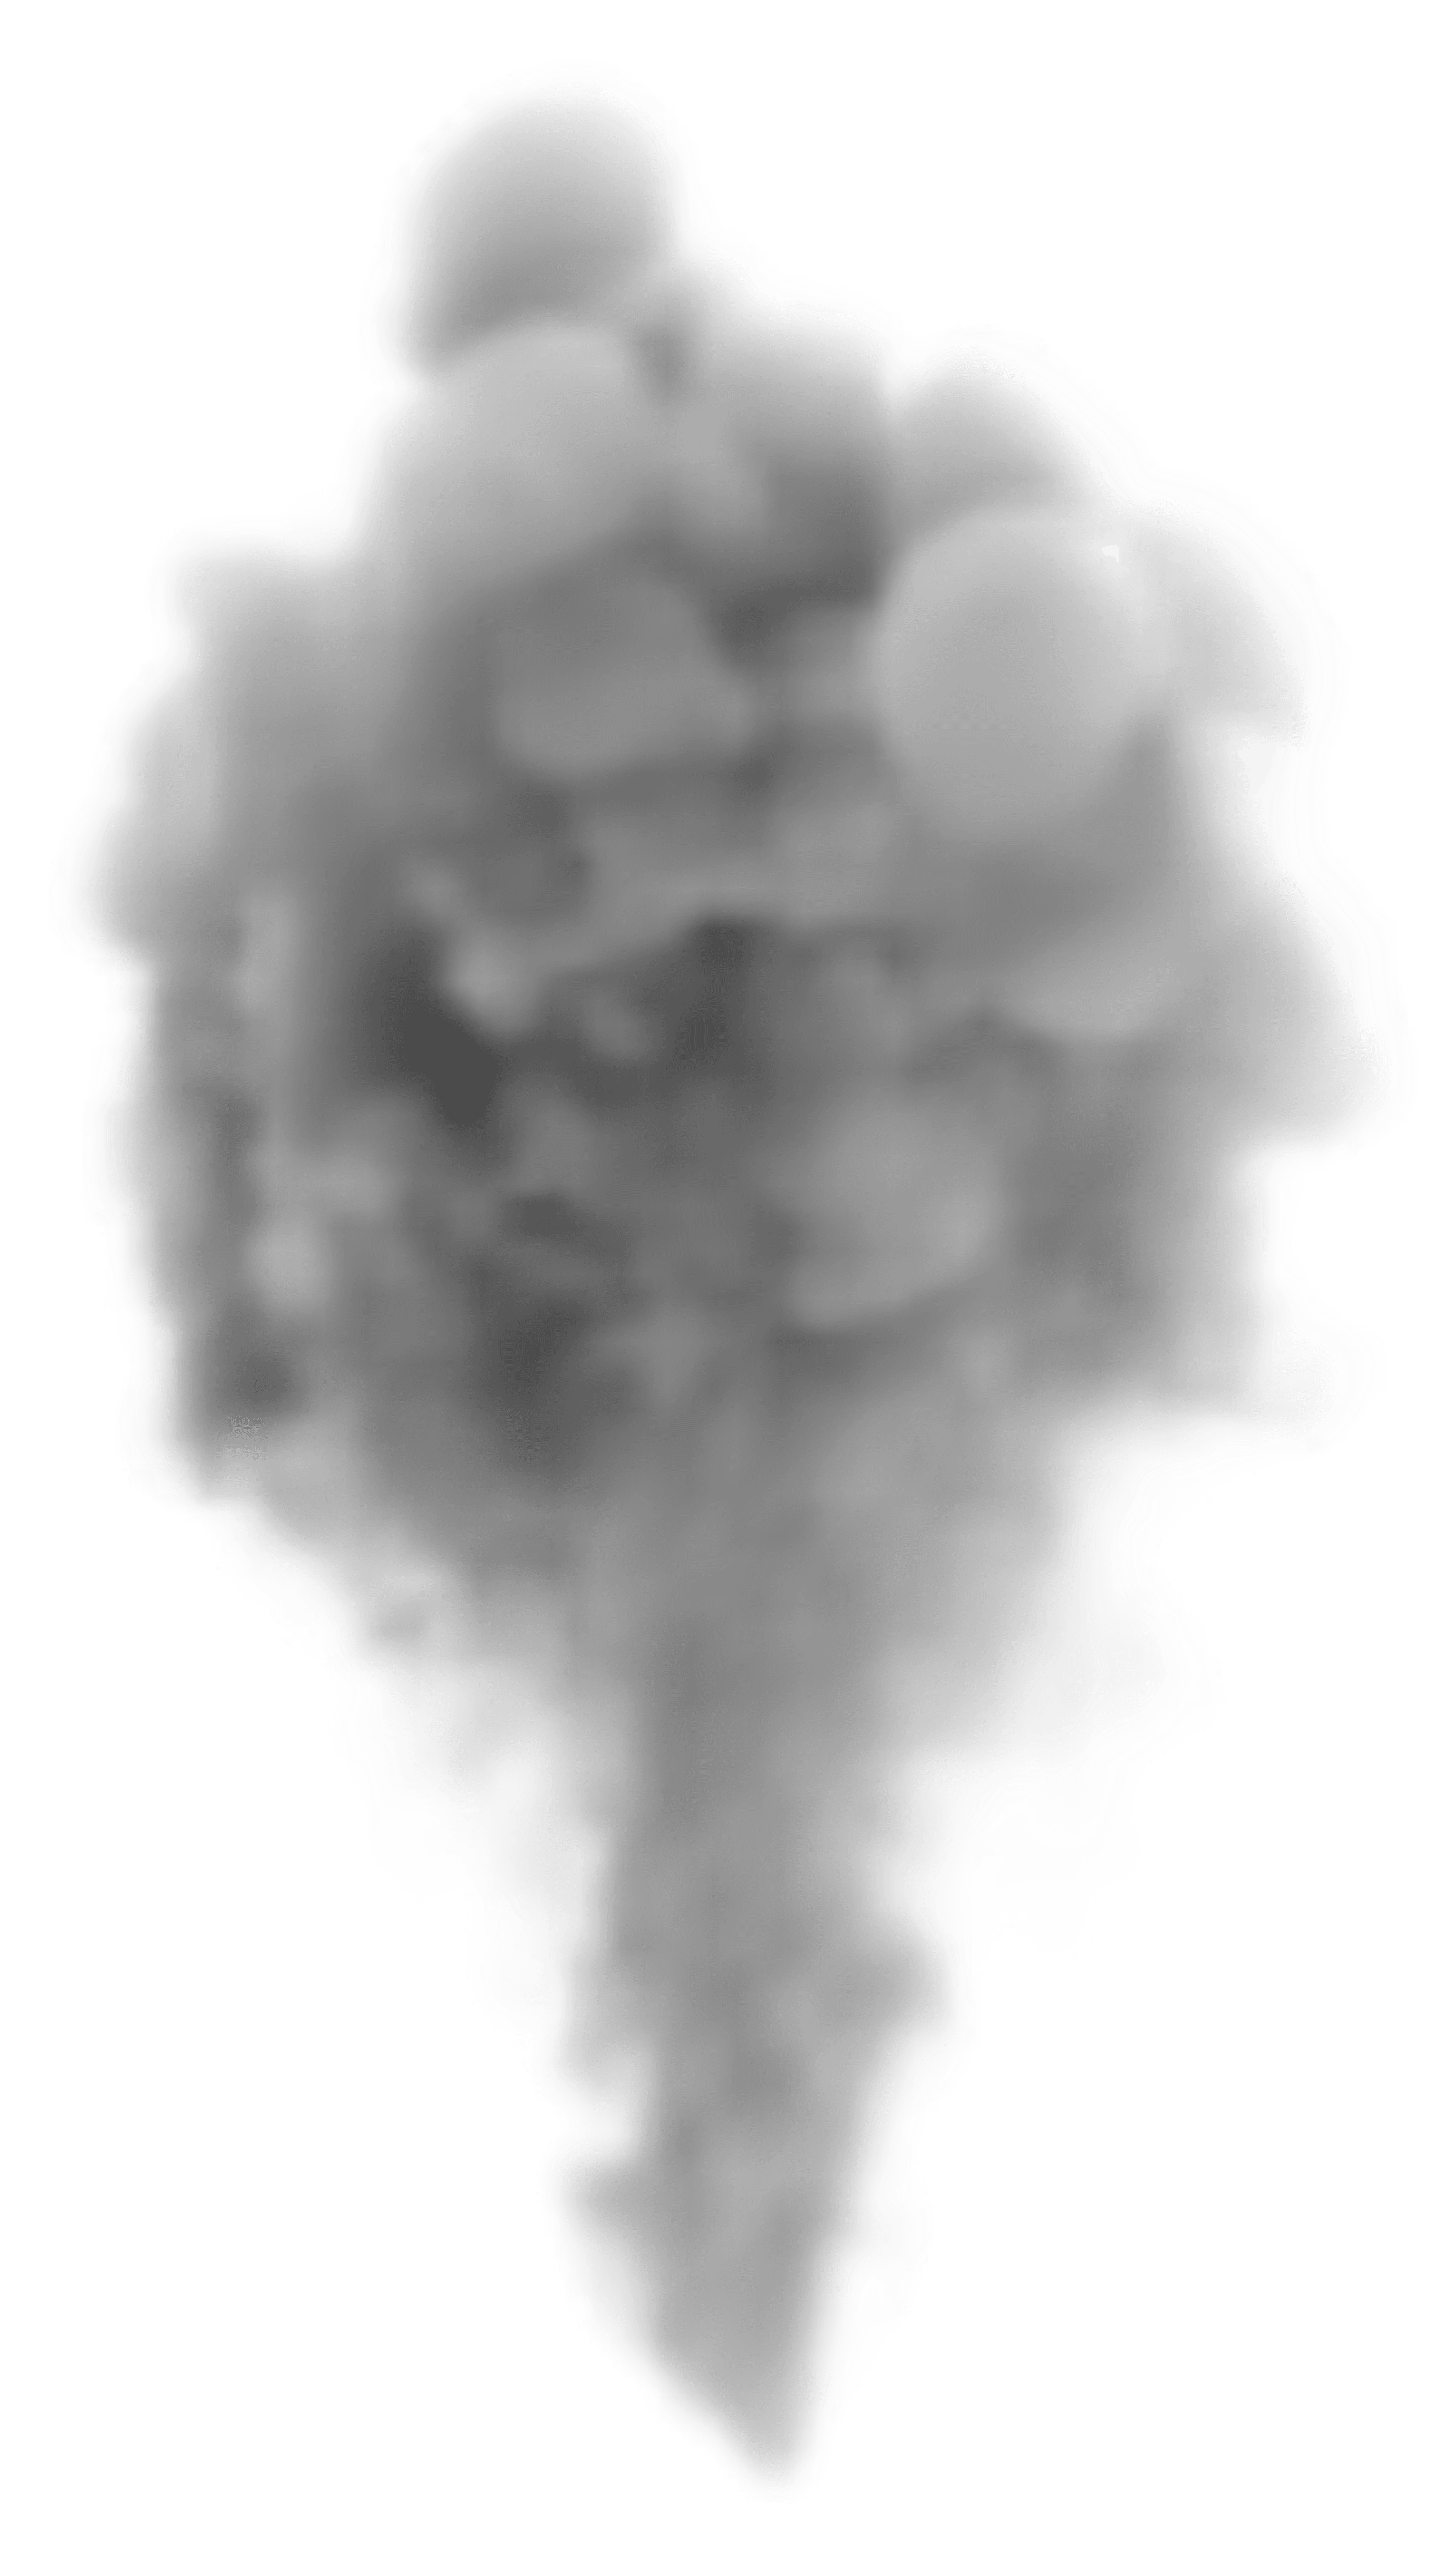 Smoke png transparent background. Large clipart image